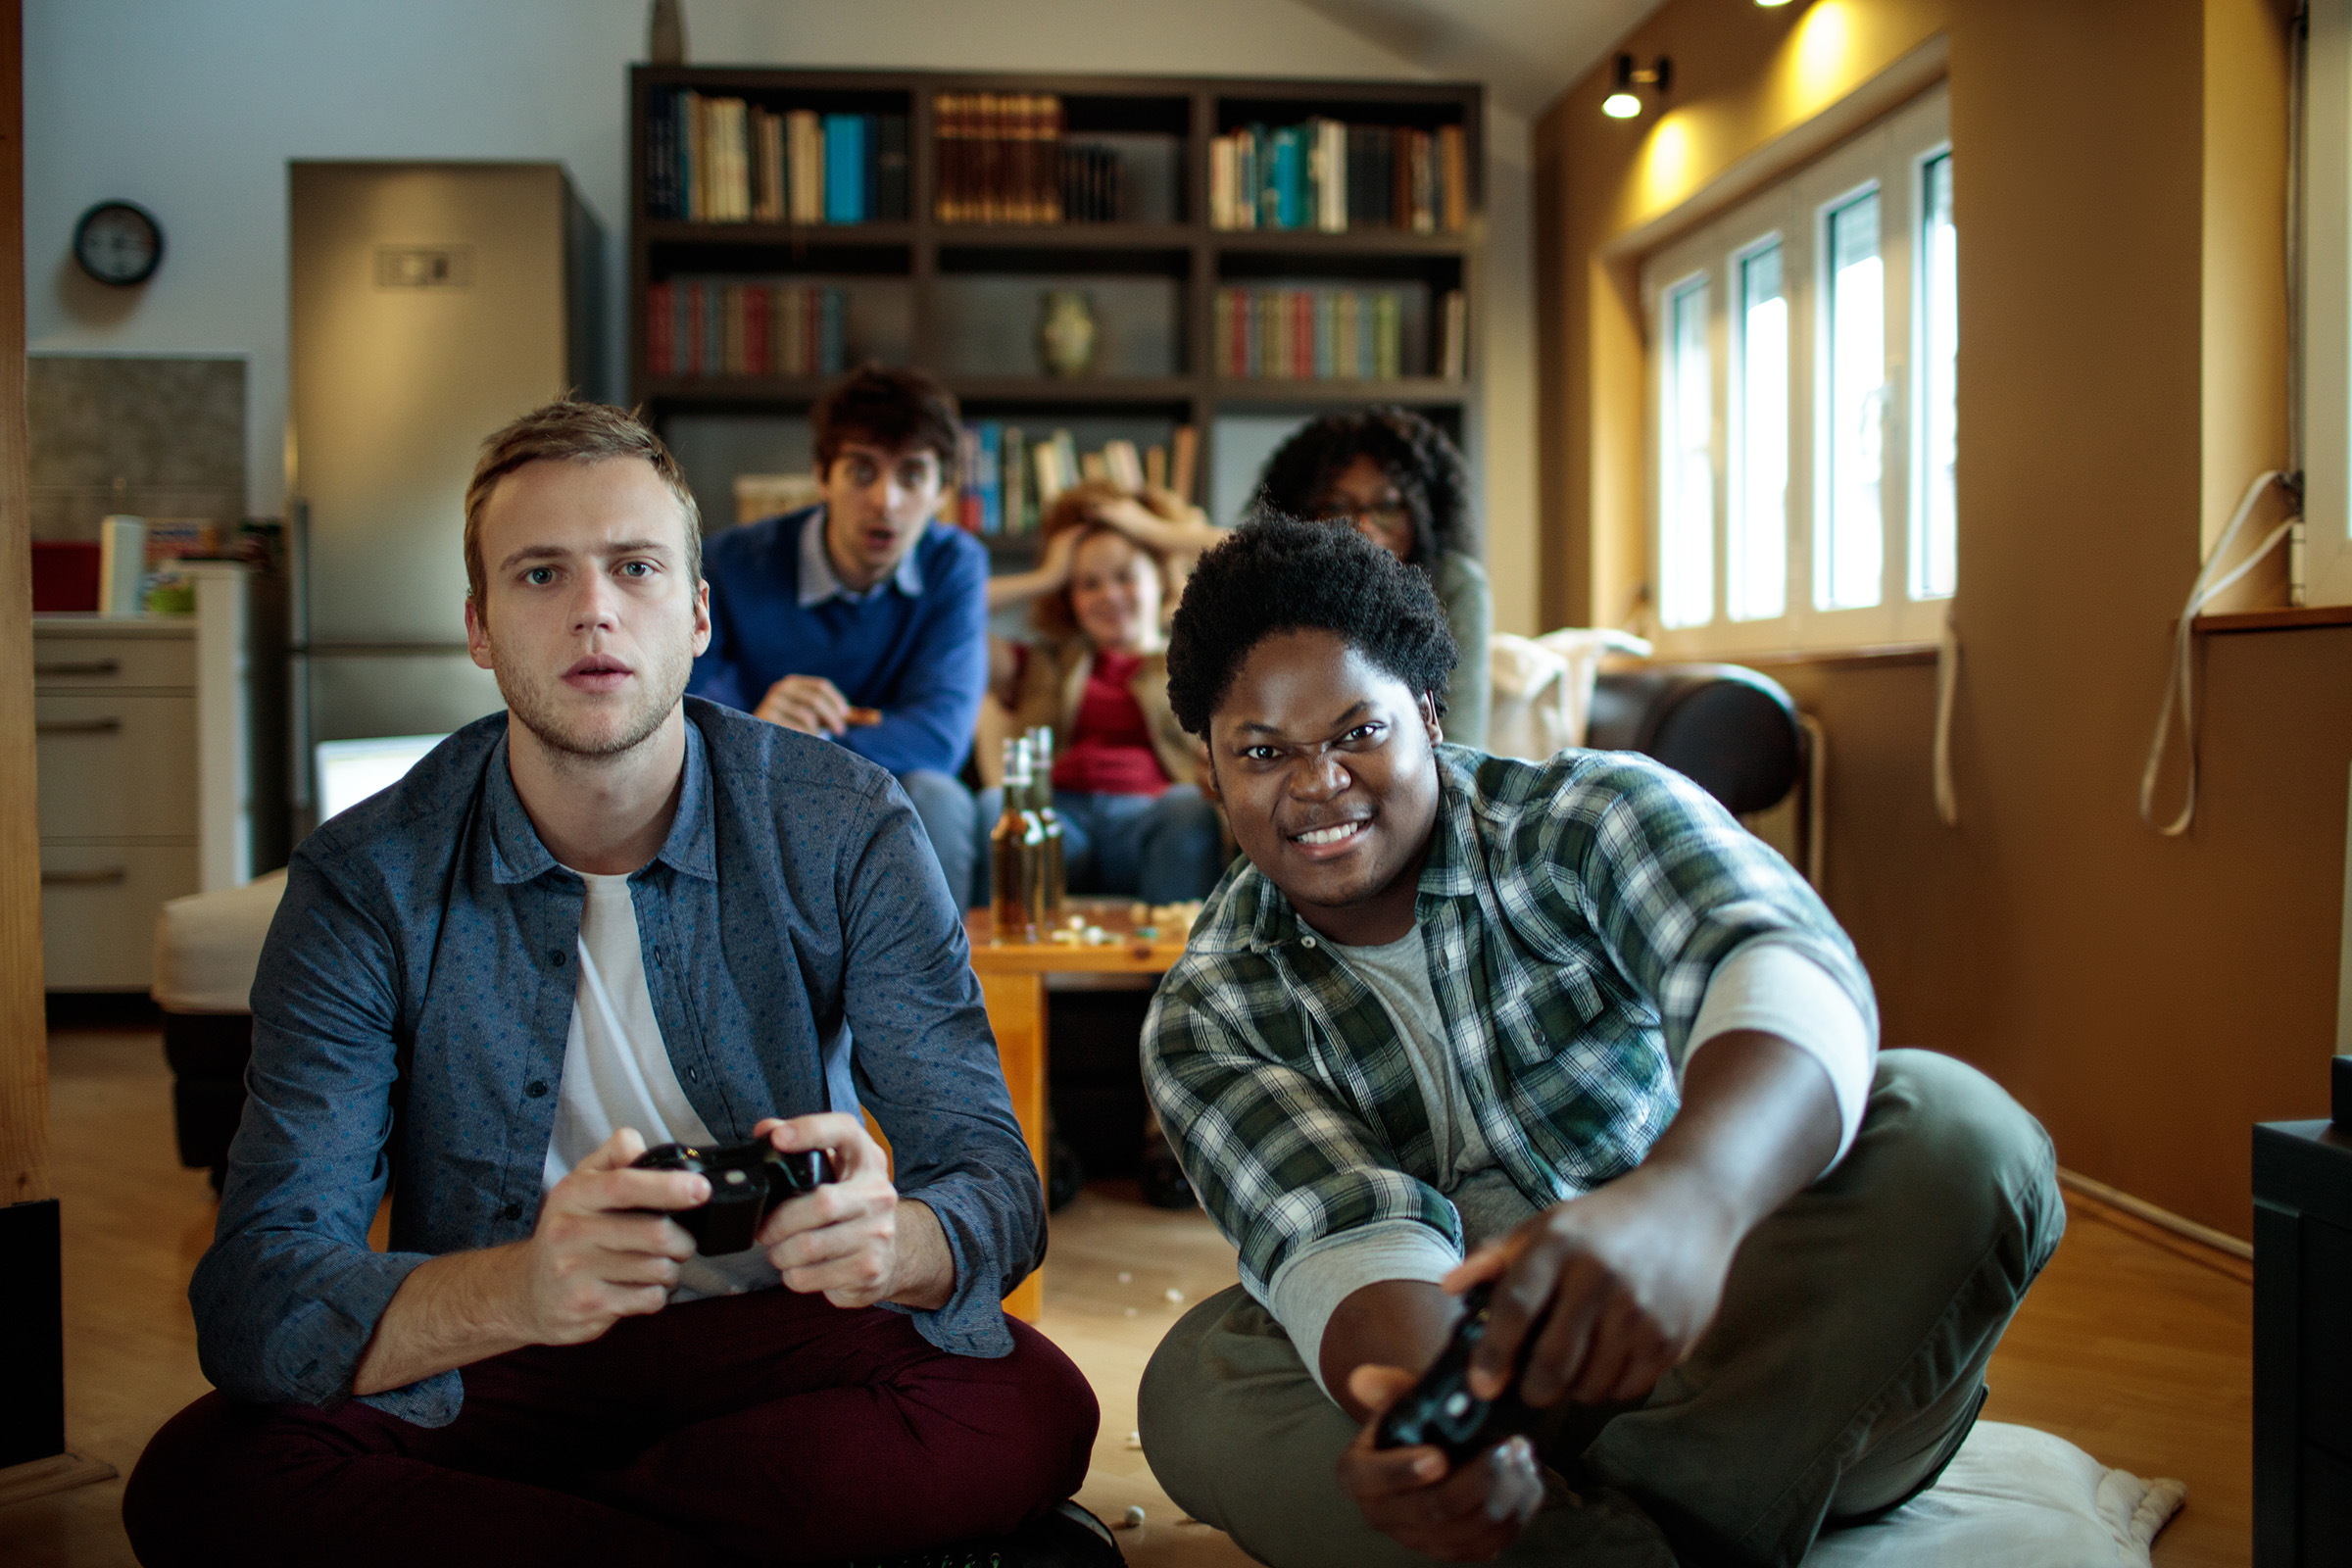 College Kids Playing Video Games